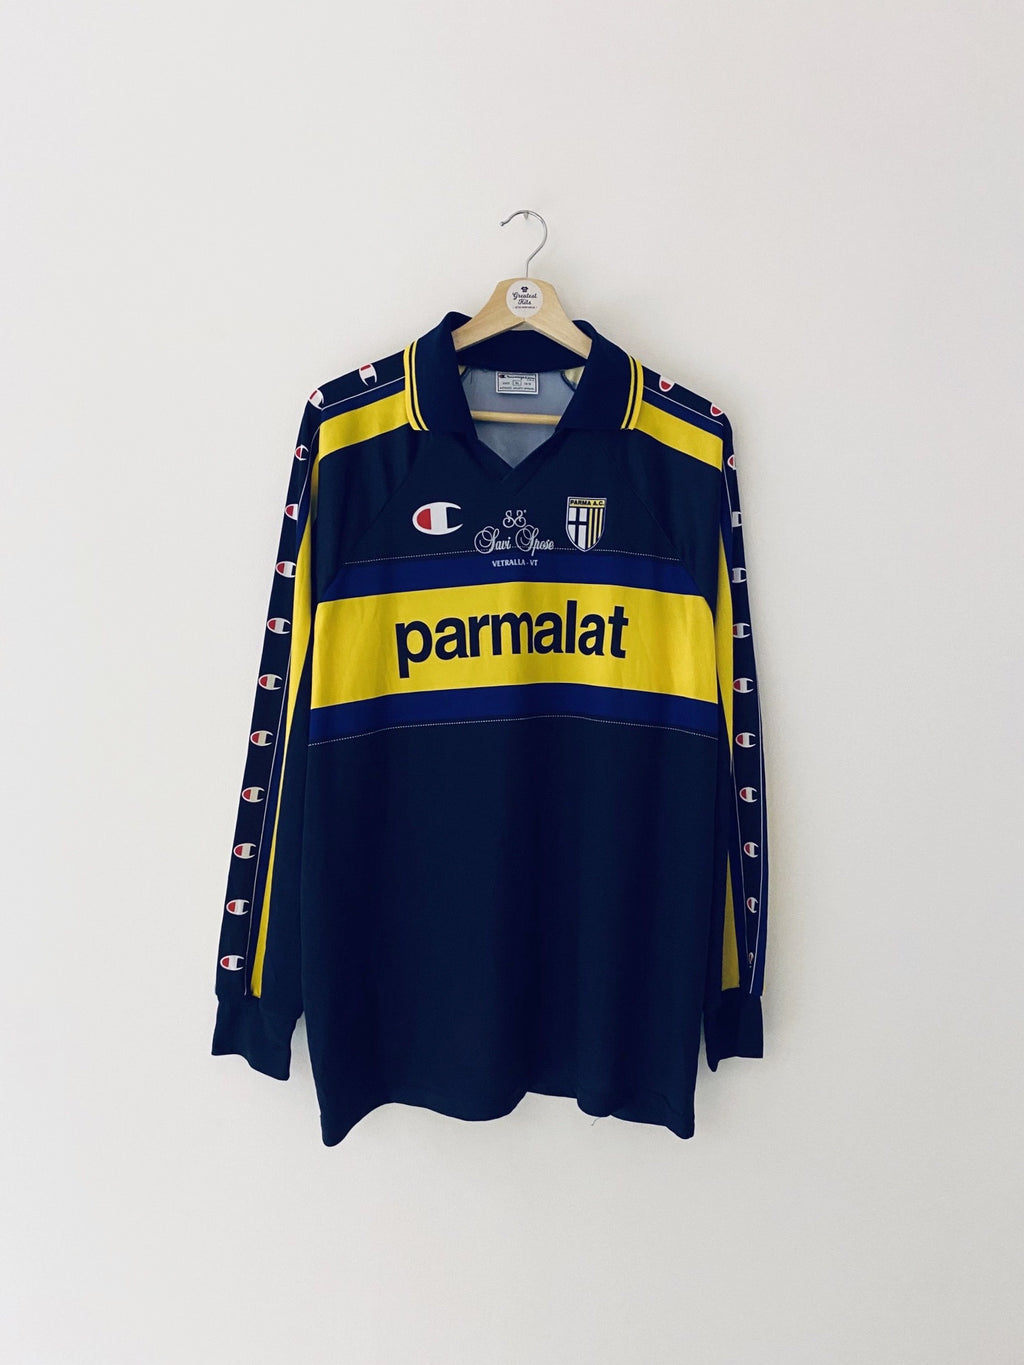 1999/00 Parma Basic Away L/S Shirt #14 (XL) 7.5/10